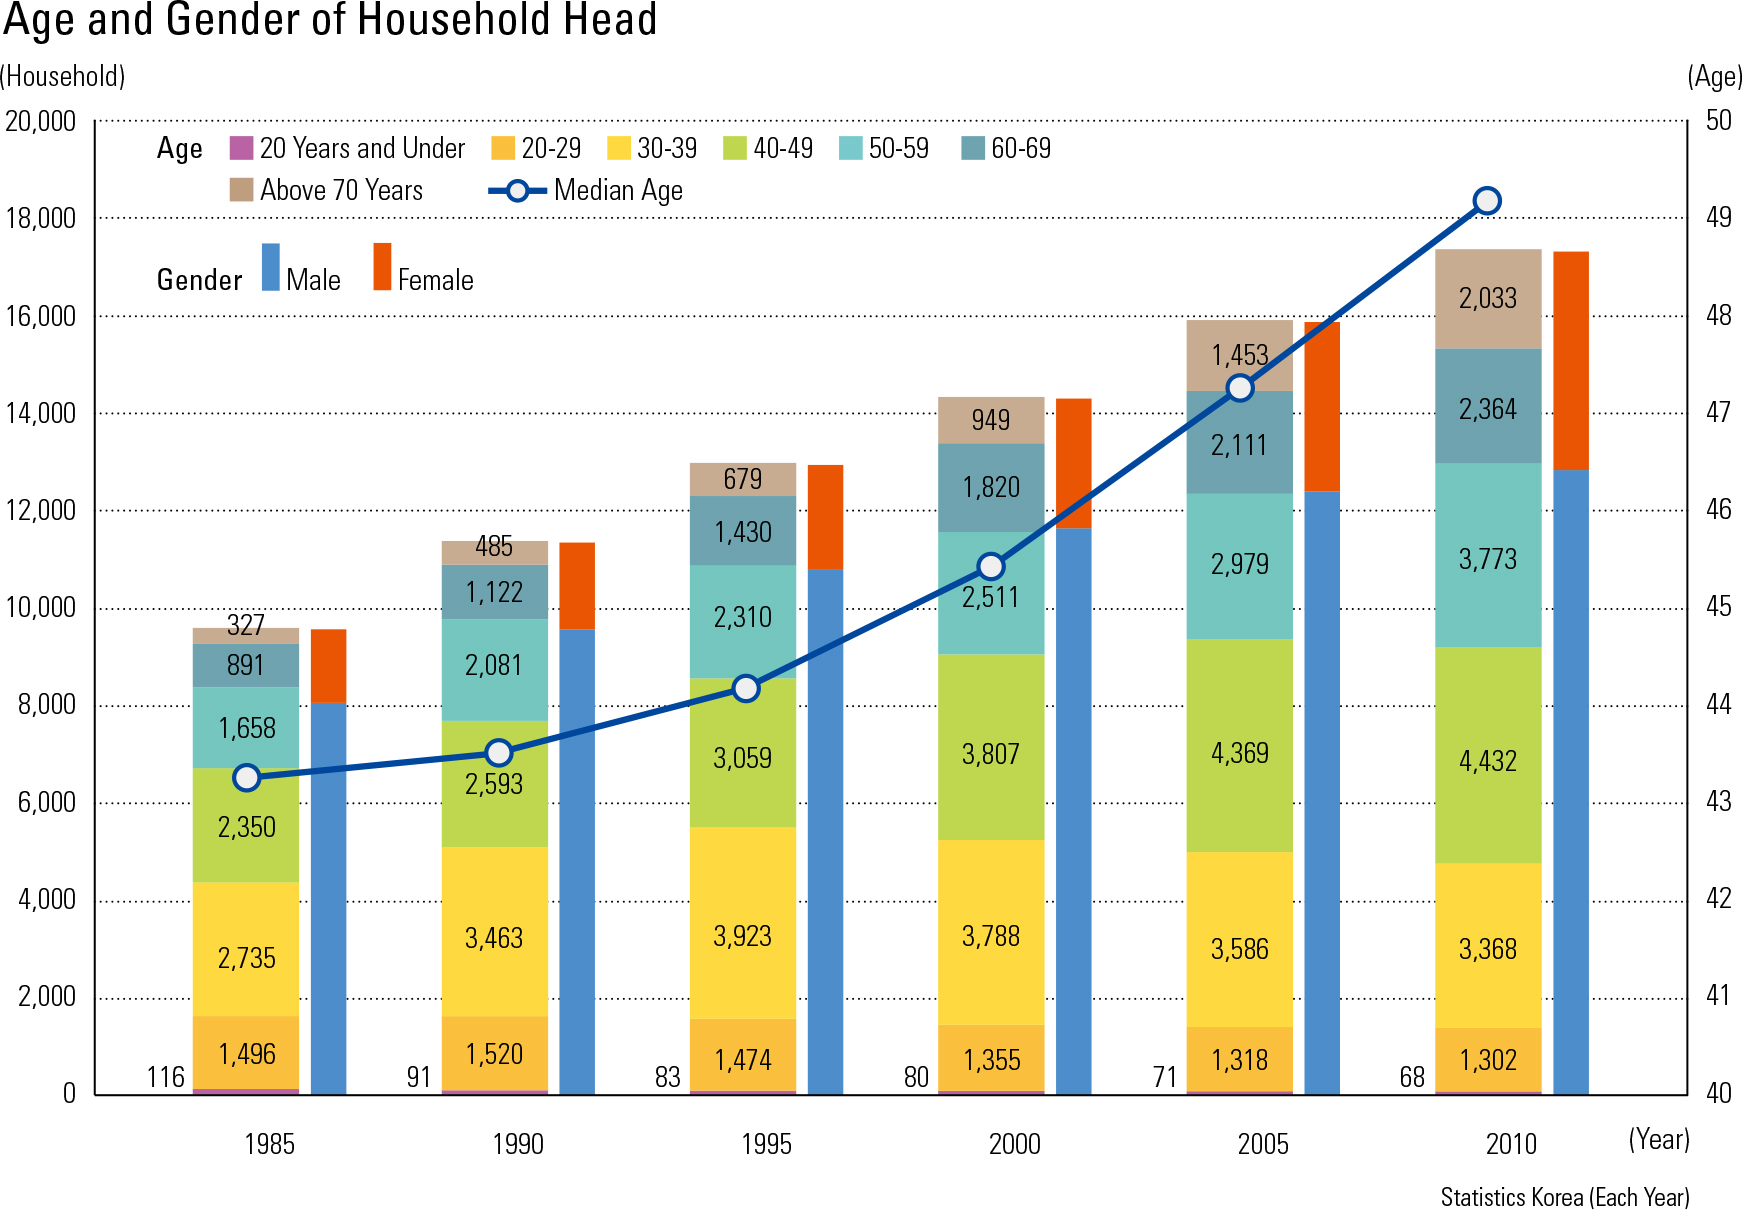 "Age and Gender of Household Head<p class=""oz_zoom"" zimg=""http://imagedata.cafe24.com/us_3/us3_137-4_2.jpg""><span style=""font-family:Nanum Myeongjo;""><span style=""font-size:18px;""><span class=""label label-danger"">UPDATE DATA</span></span></p>"